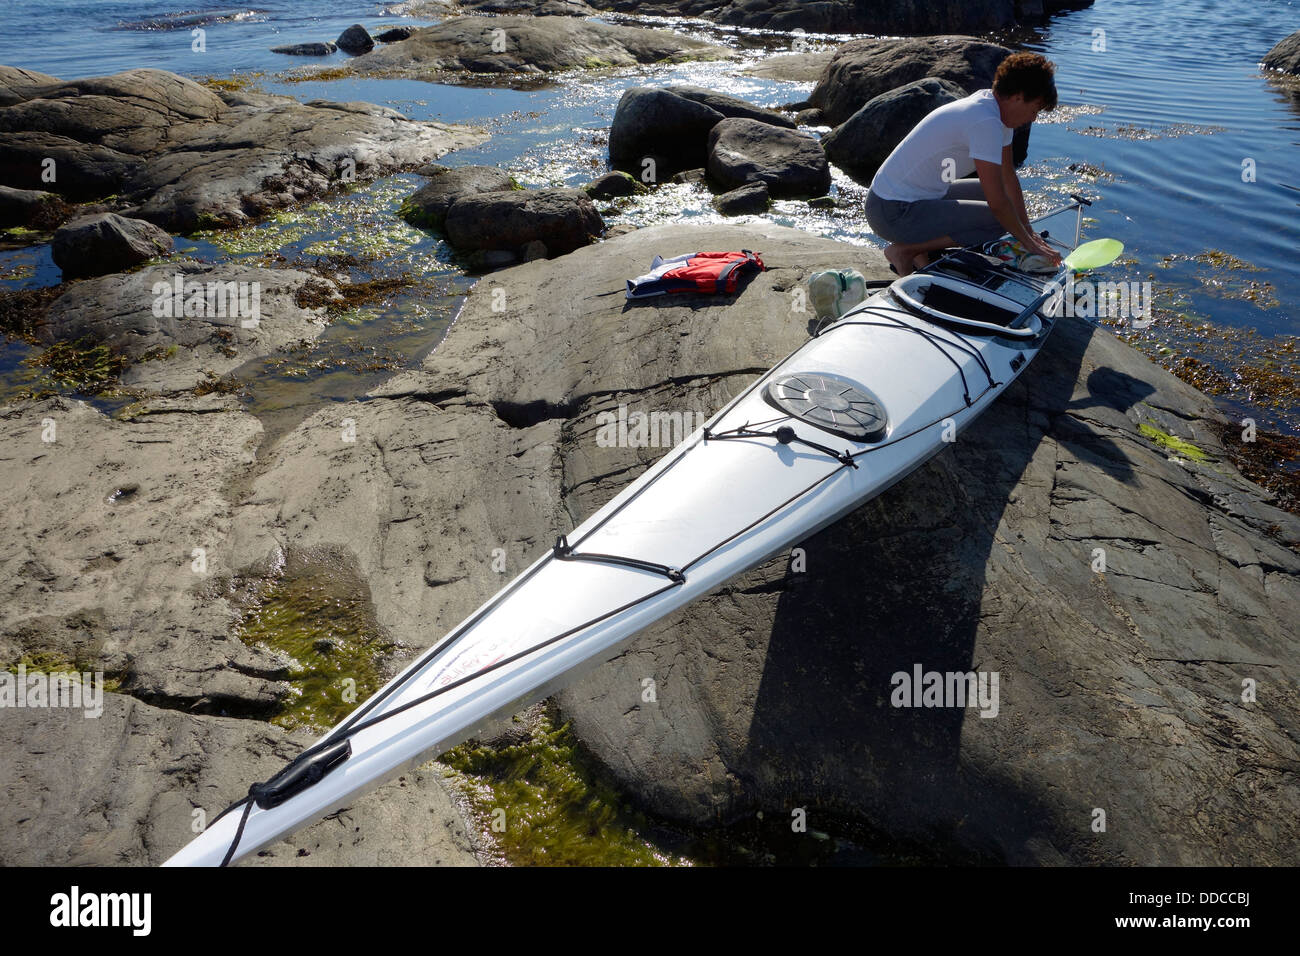 A woman packs her kayak for a tour - Stock Image